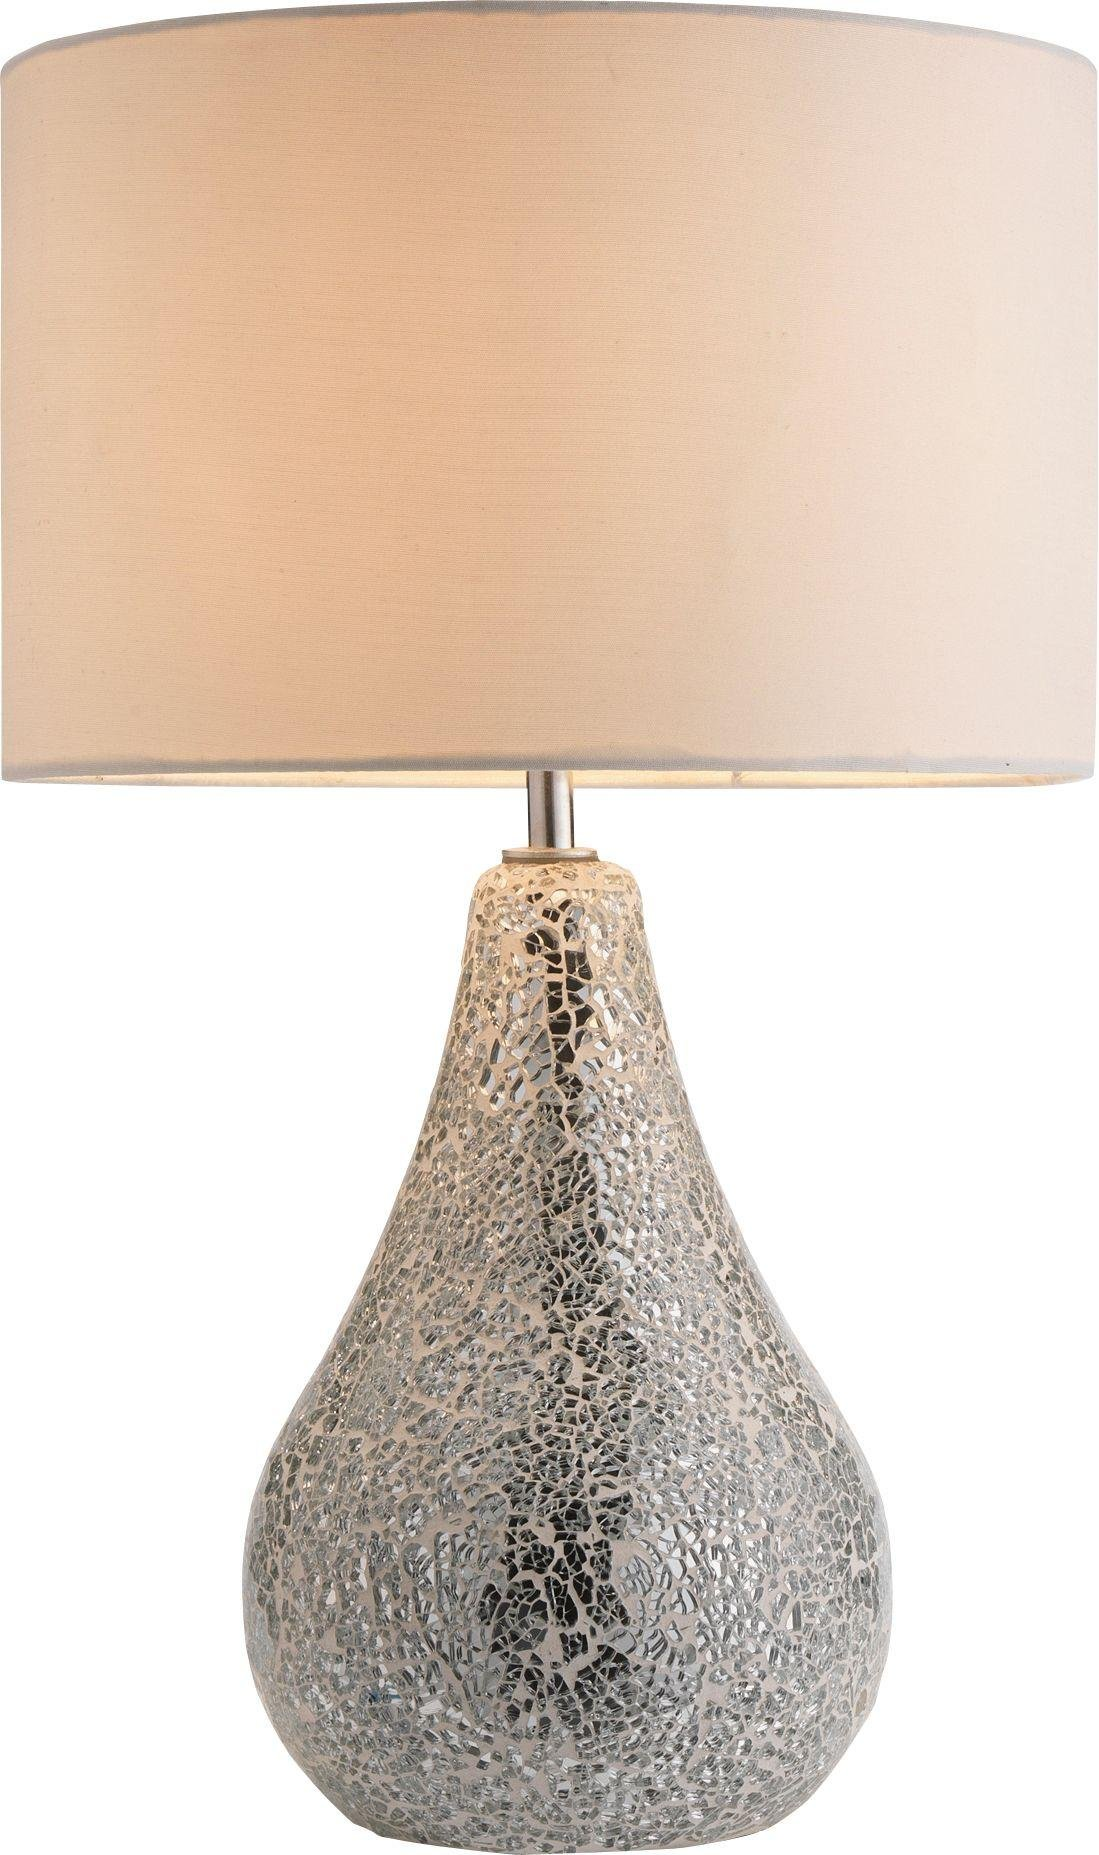 Argos Home Eloise Crackle Finish Table Lamp - Silver